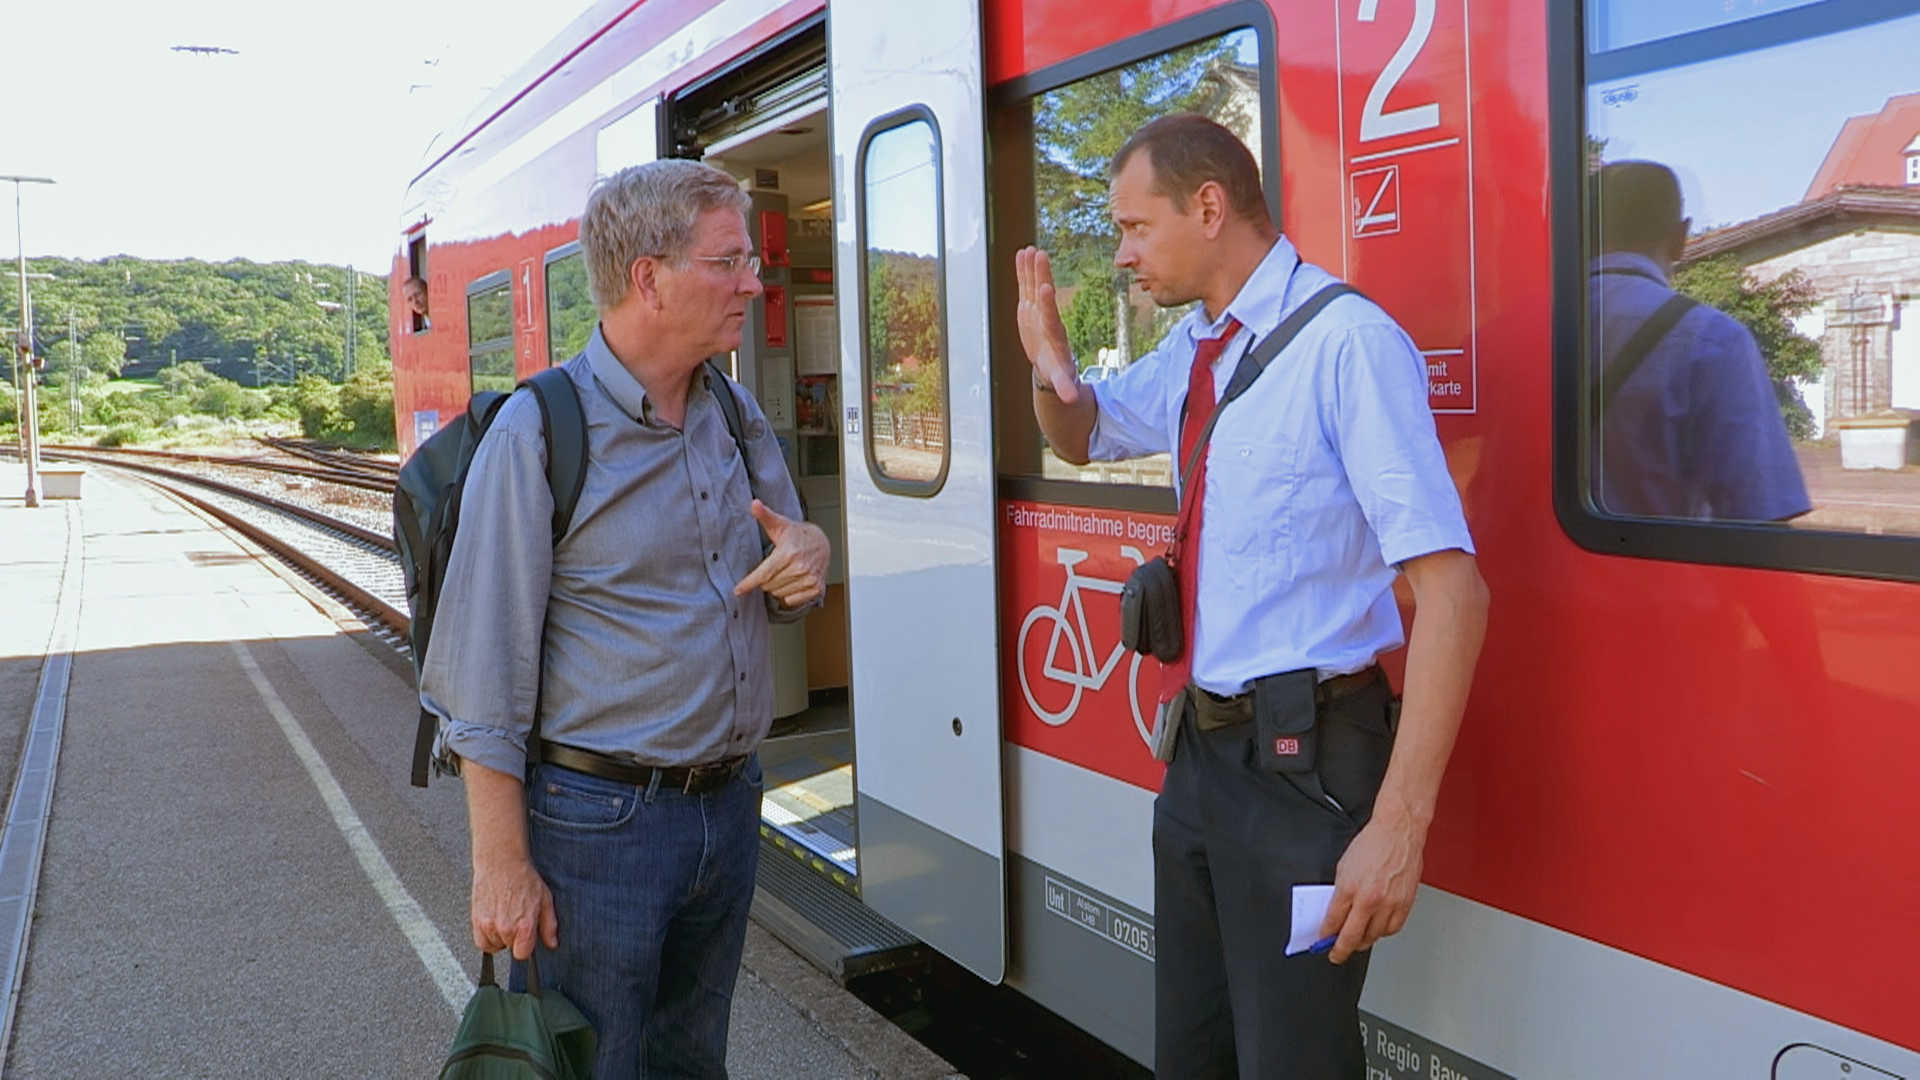 Rick Steves speaks with a train conductor